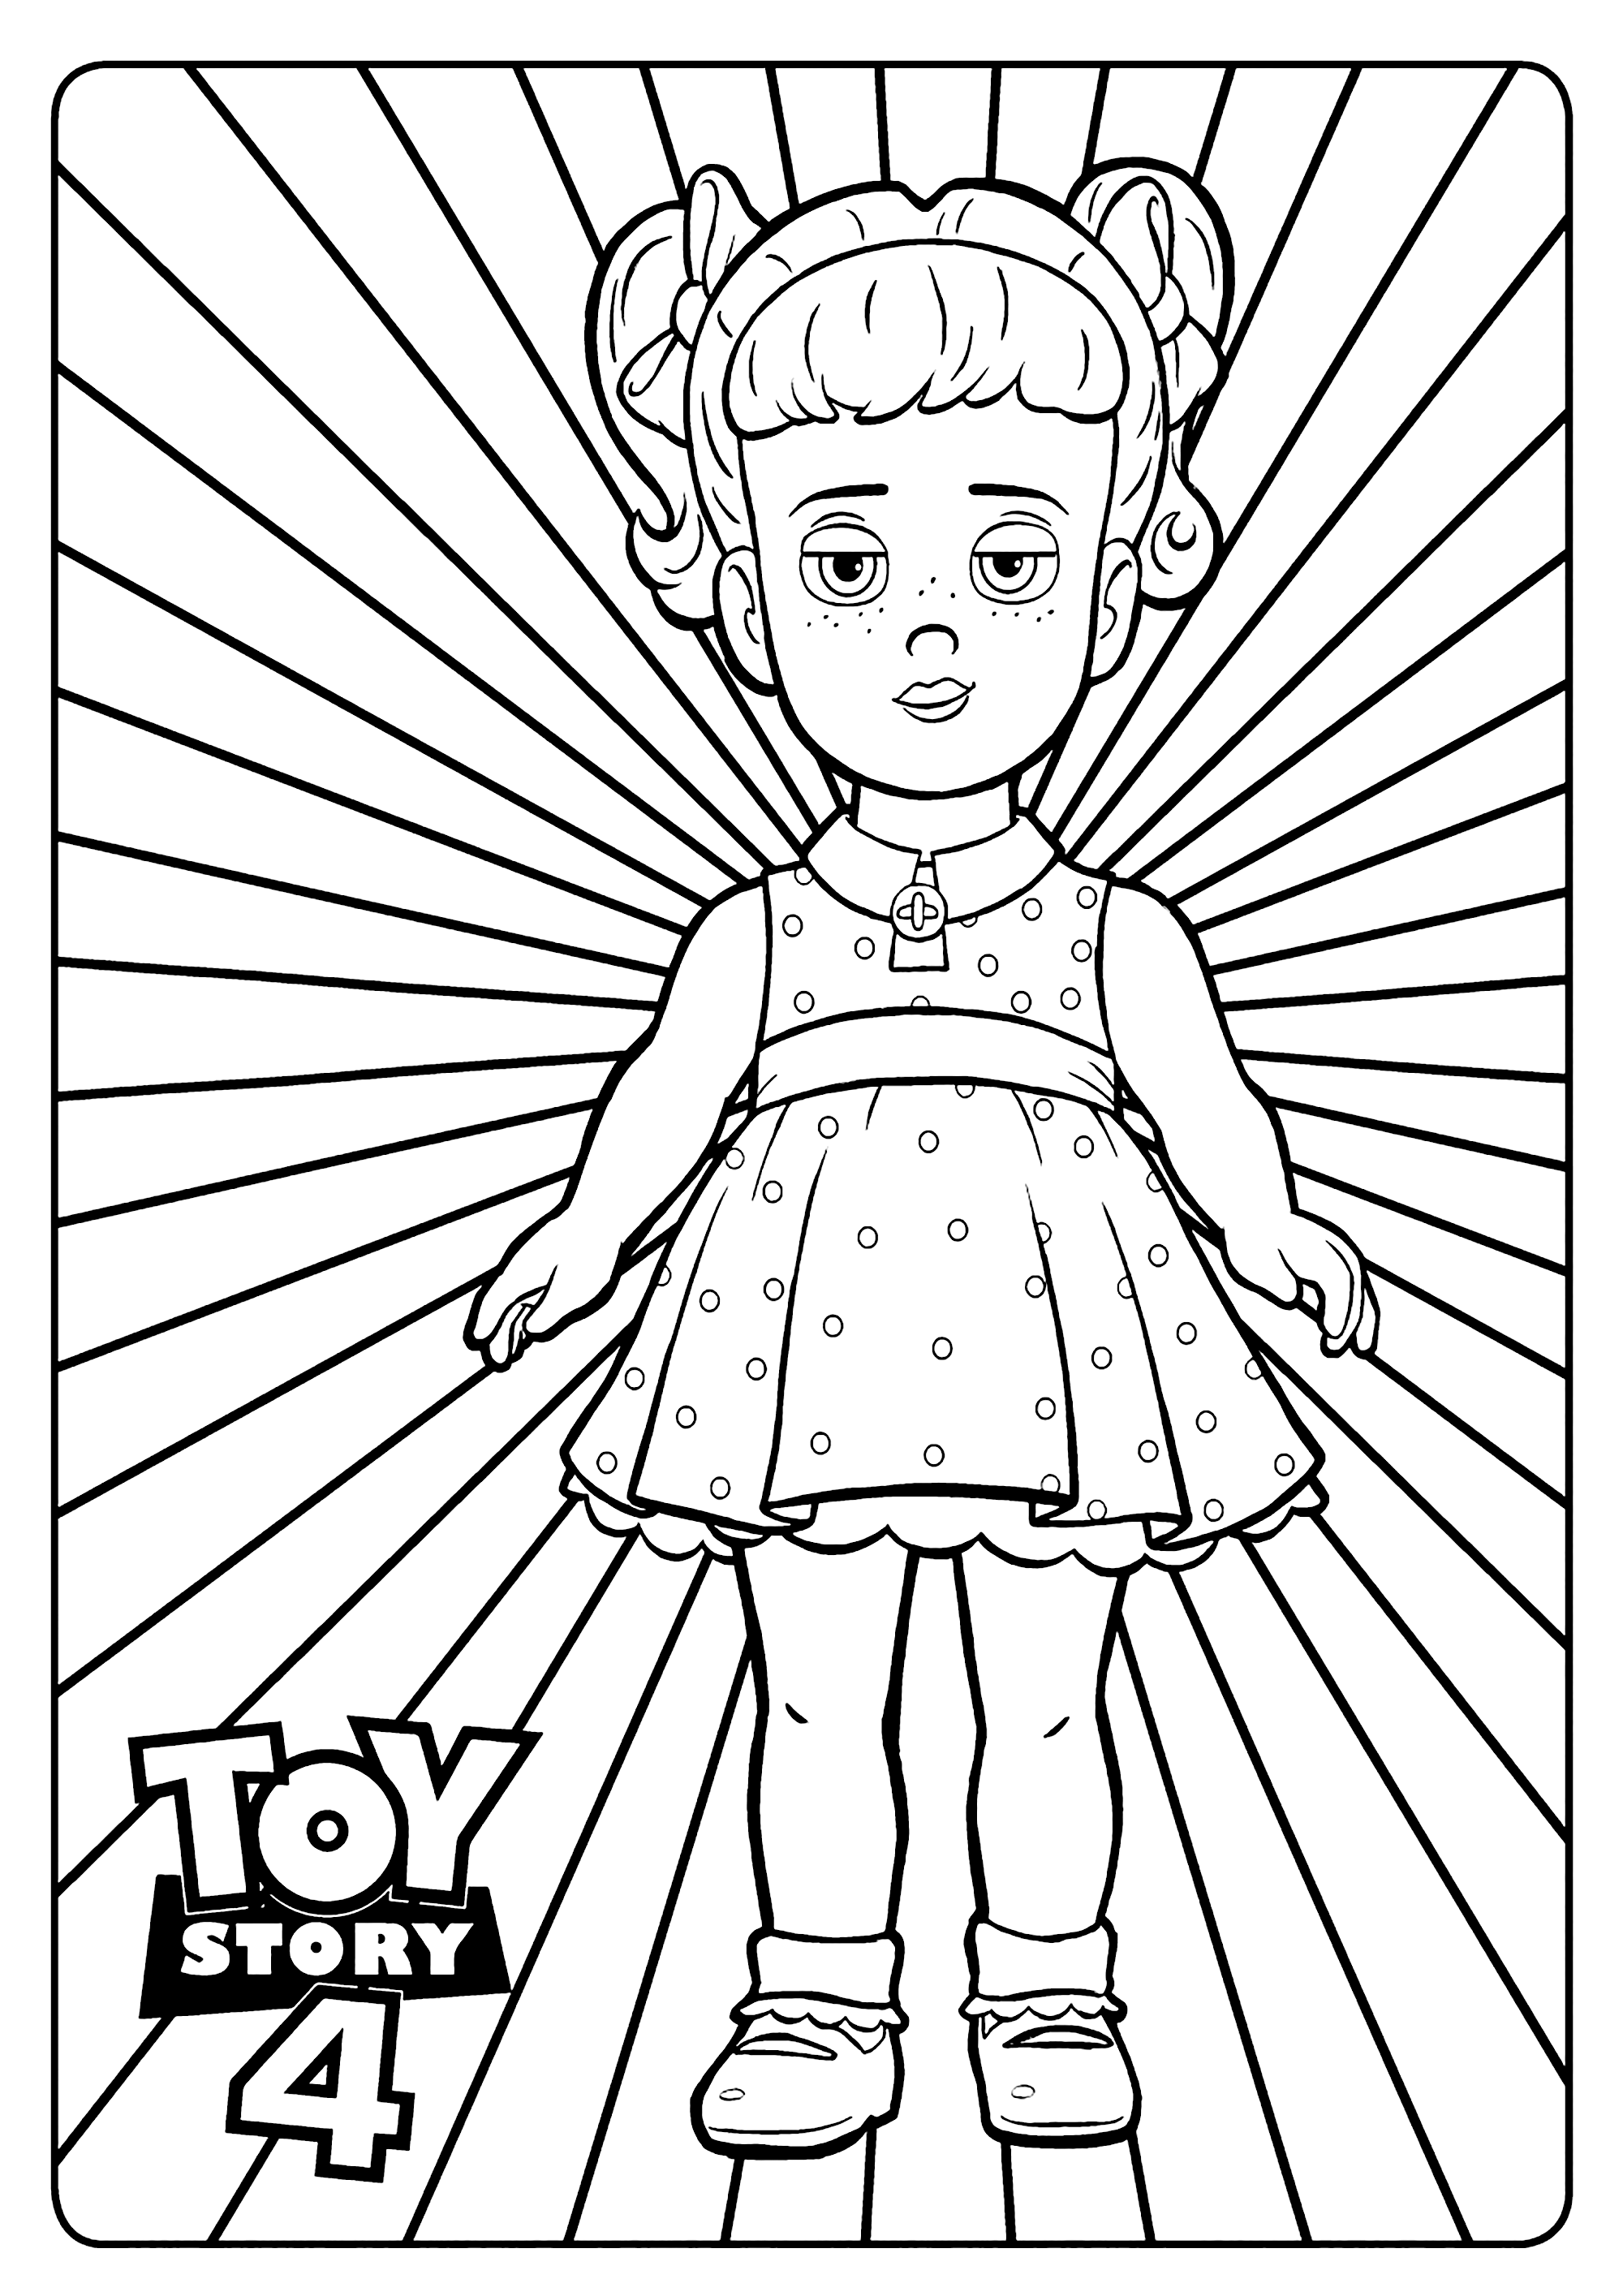 bunny toy story 4 coloring pages coloring pages pages 4 story bunny toy coloring